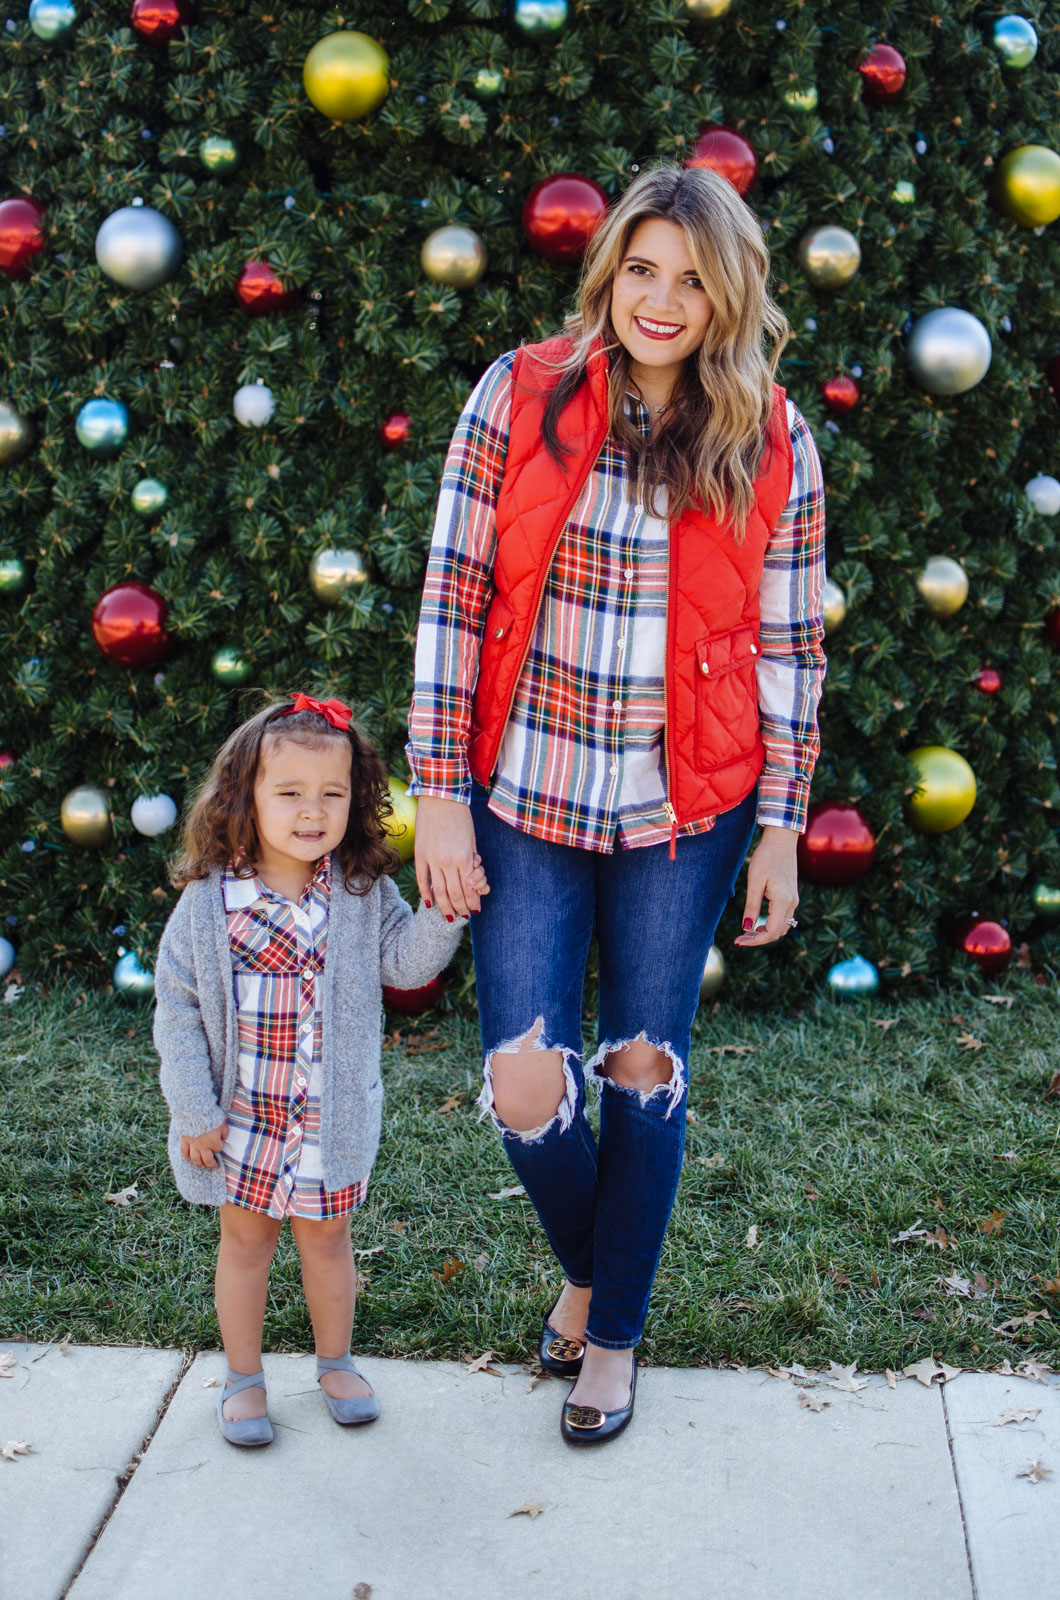 mommy and me outfits for christmas - the cutest mommy daughter outfits for christmas! Get all the outfit details at bylaurenm.com!